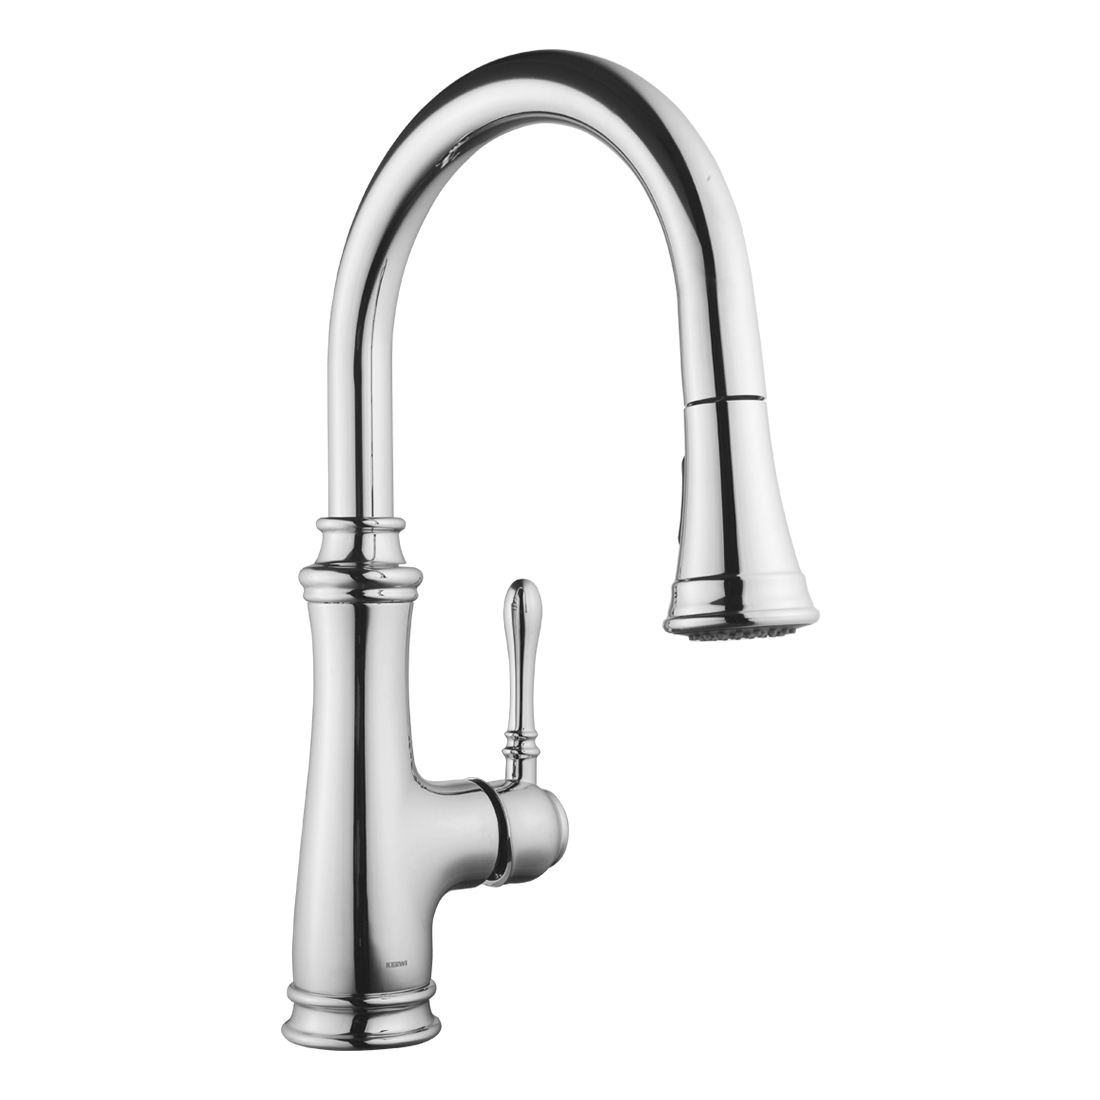 keewi single handle kitchen faucet with pull down sprayer pull out kitchen faucet featuring flexing chrome